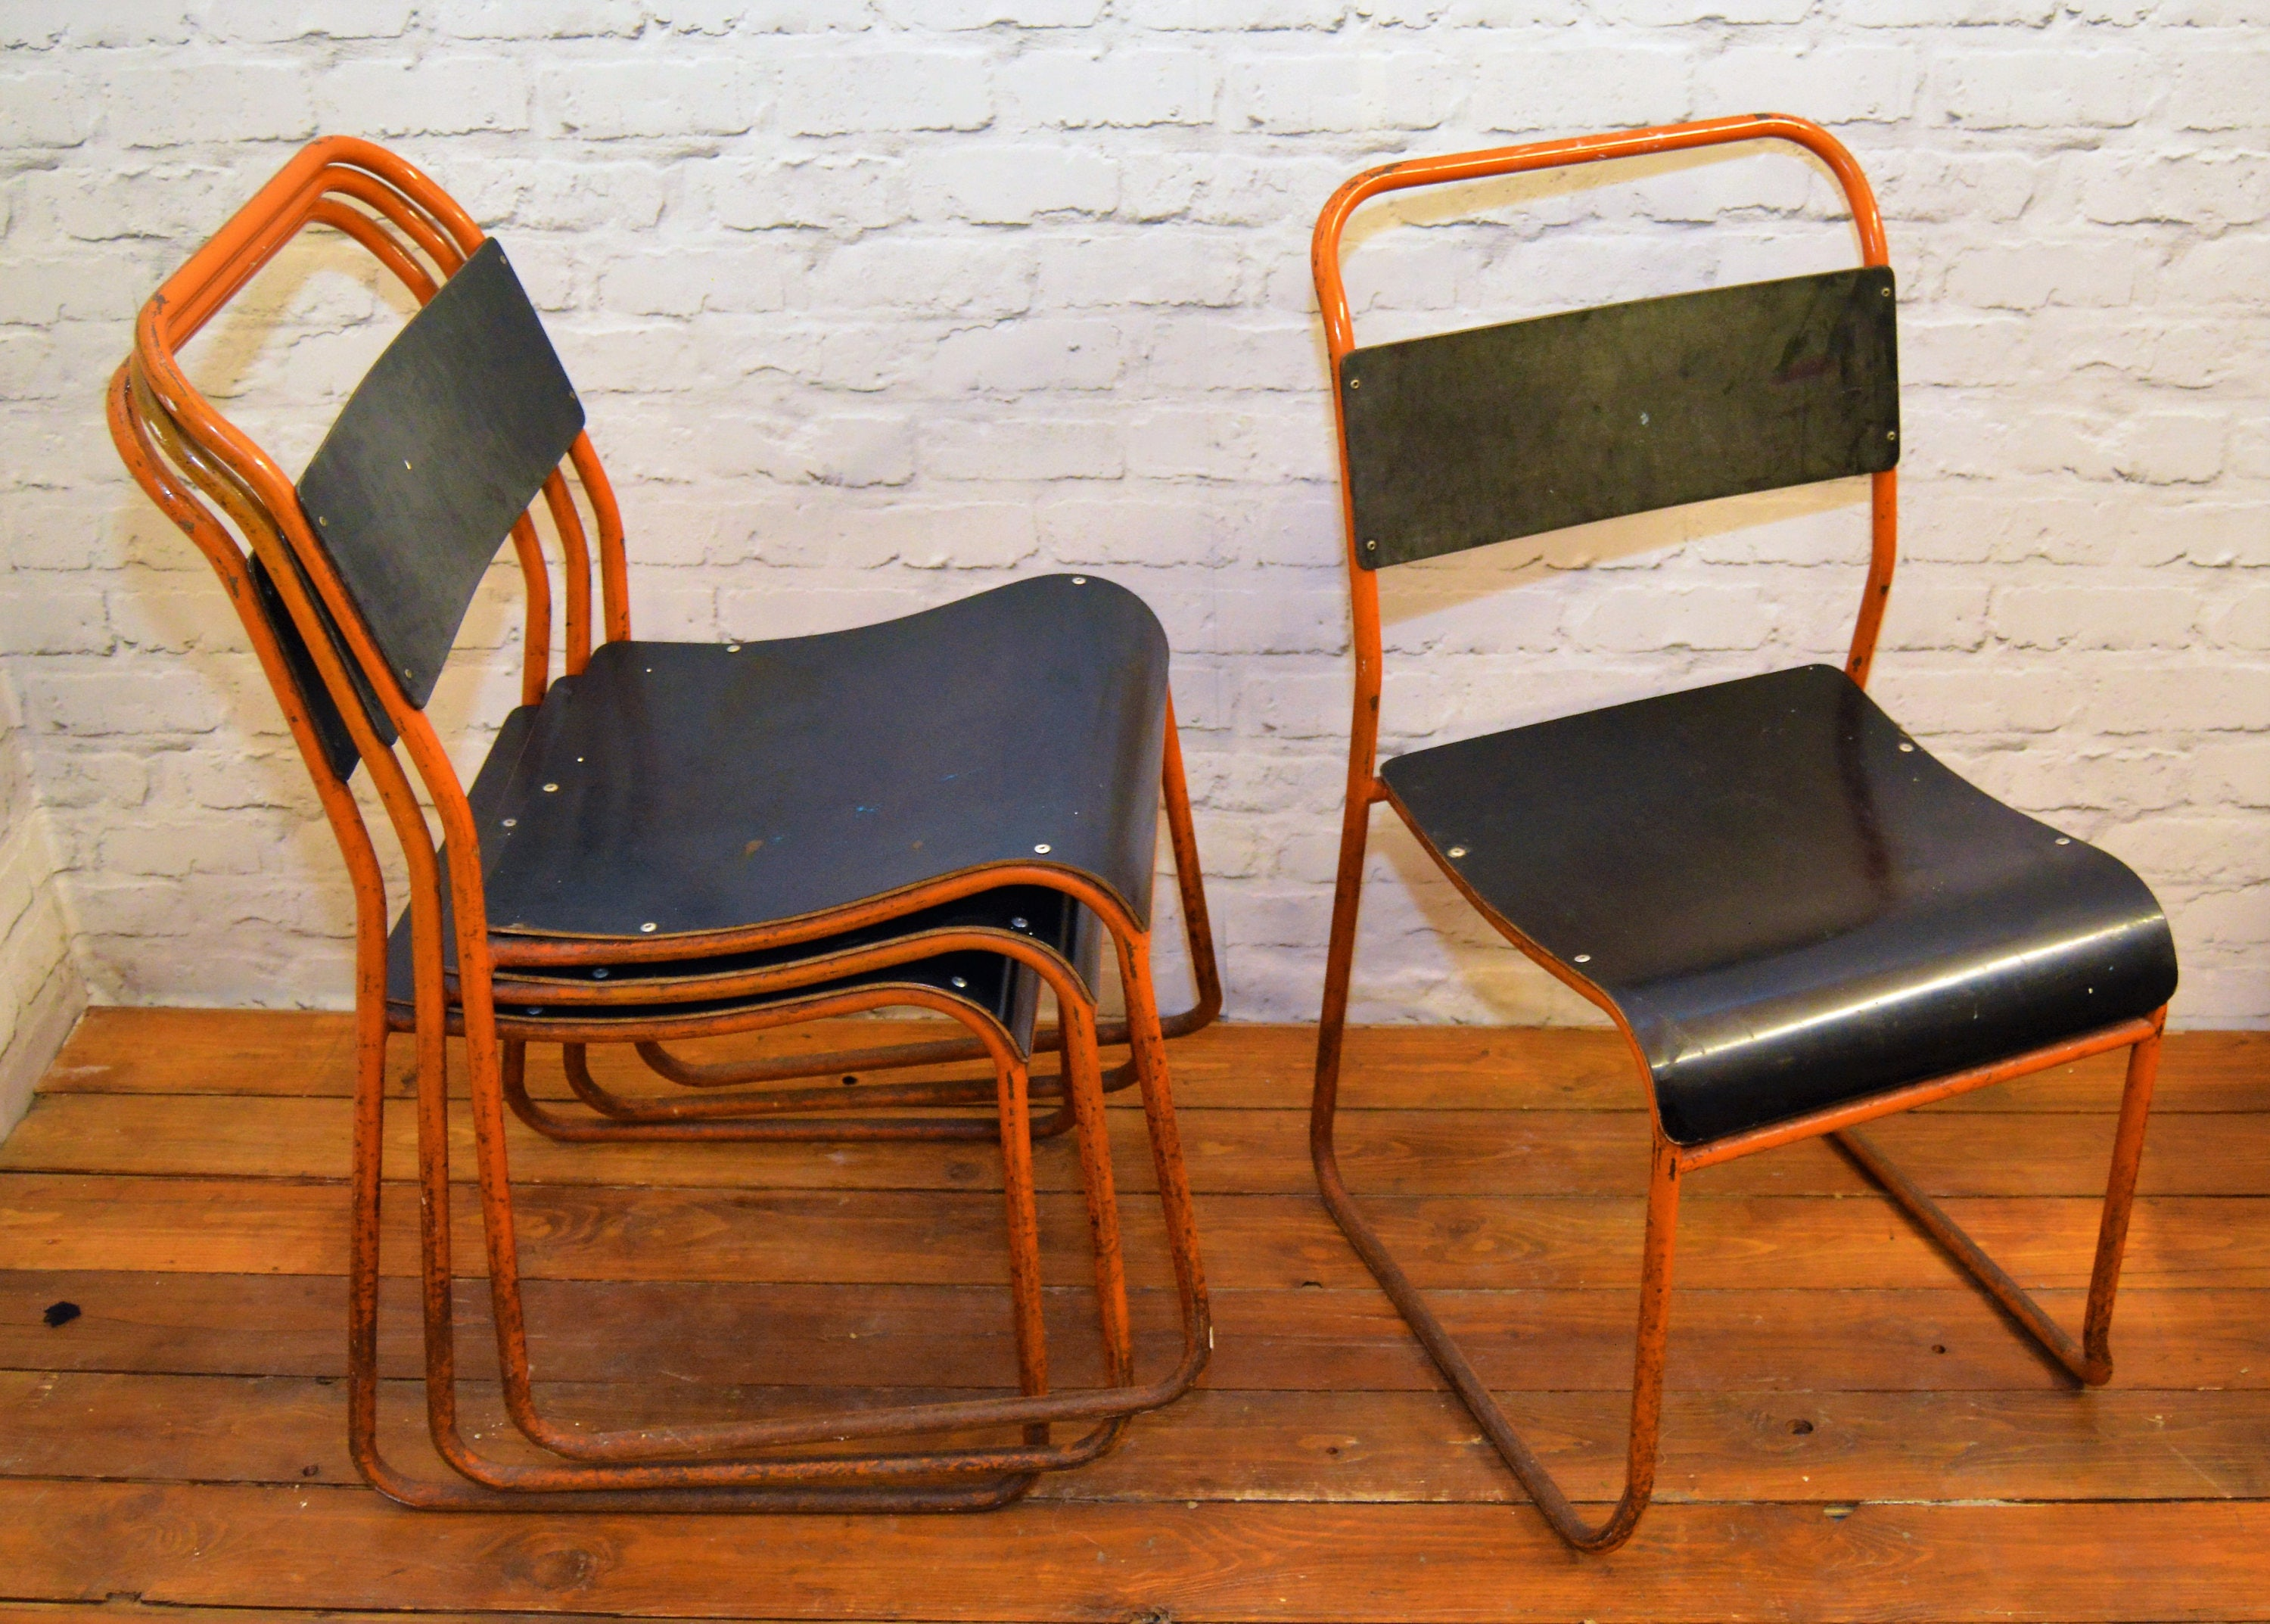 12 available vintage stacking chairs antique industrial retro cafe interior design restaurant bakelite tubular metal kitchen